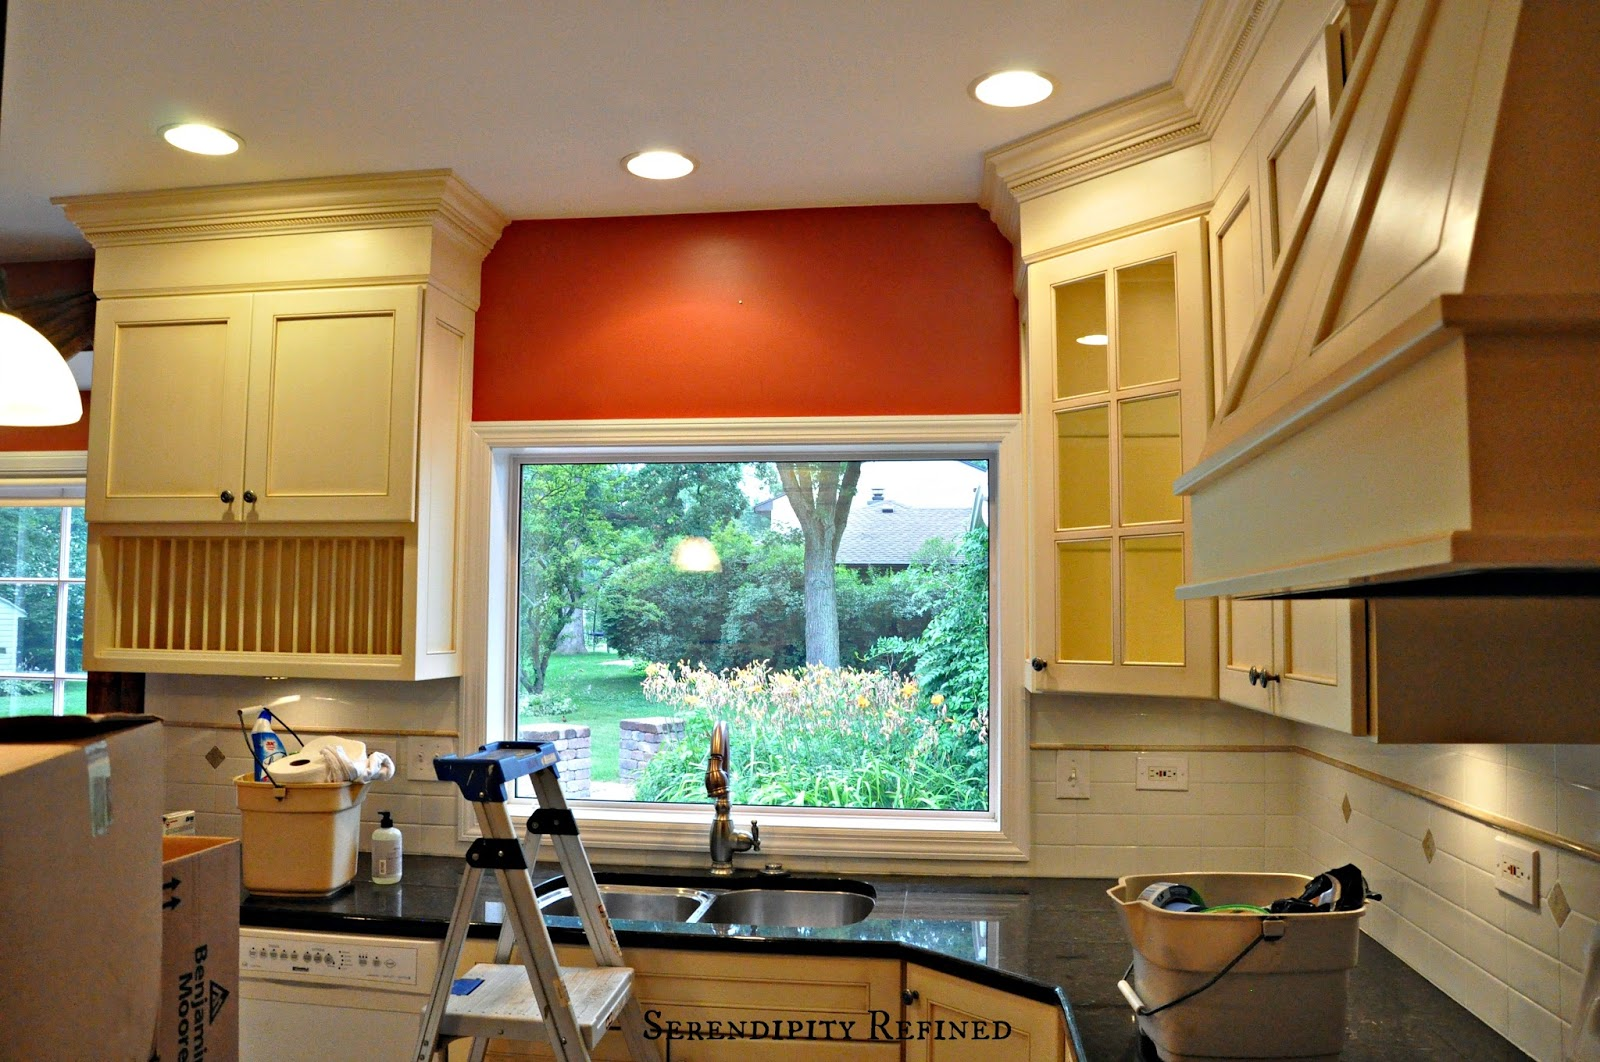 Serendipity Refined Blog French Farm House Kitchen Progress Paint and Light Fixtures